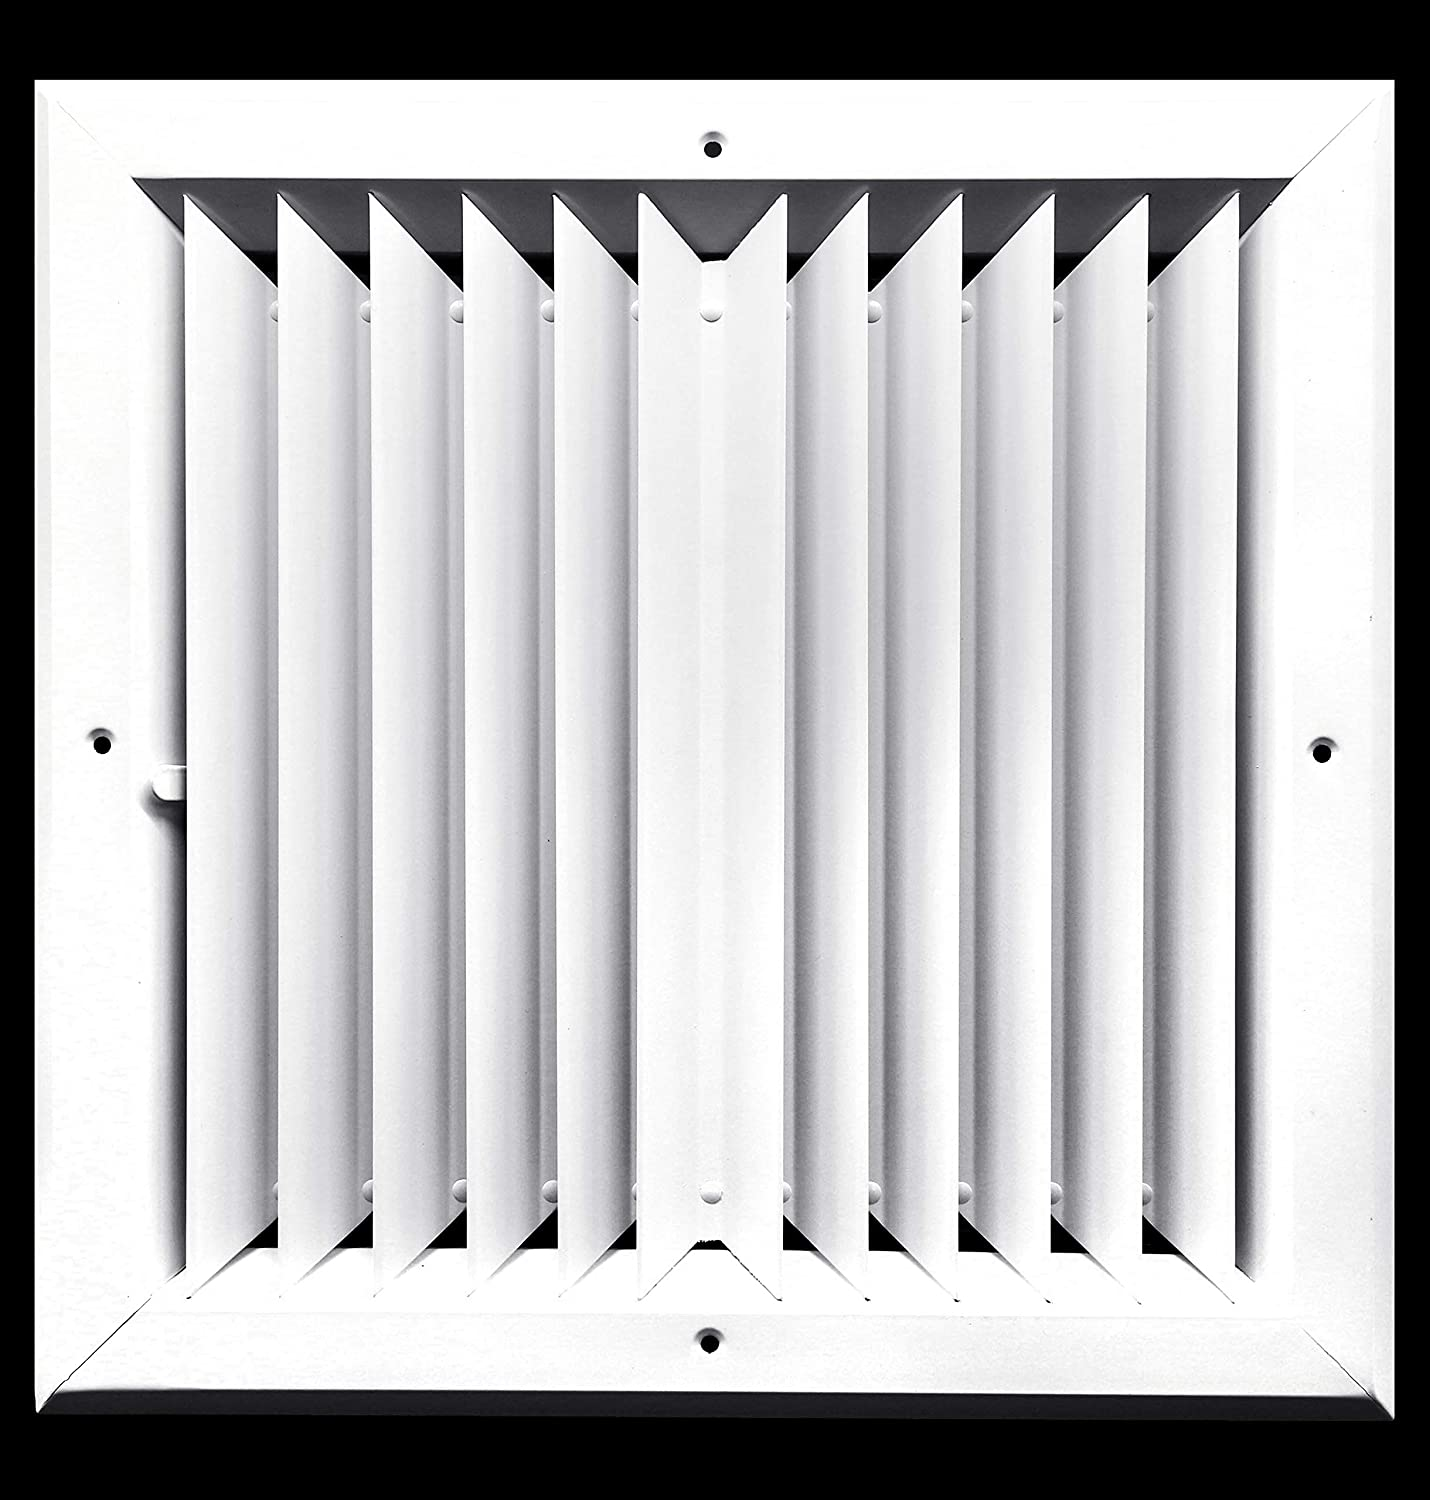 """8 x 8 (in) HVAC Vent Cover - 2 Way Aluminum Bar Ceiling Diffuser - with Opposing Dampers Via Lever Control [Outer Dimensions: 11"""" Width, 11"""" Height]"""